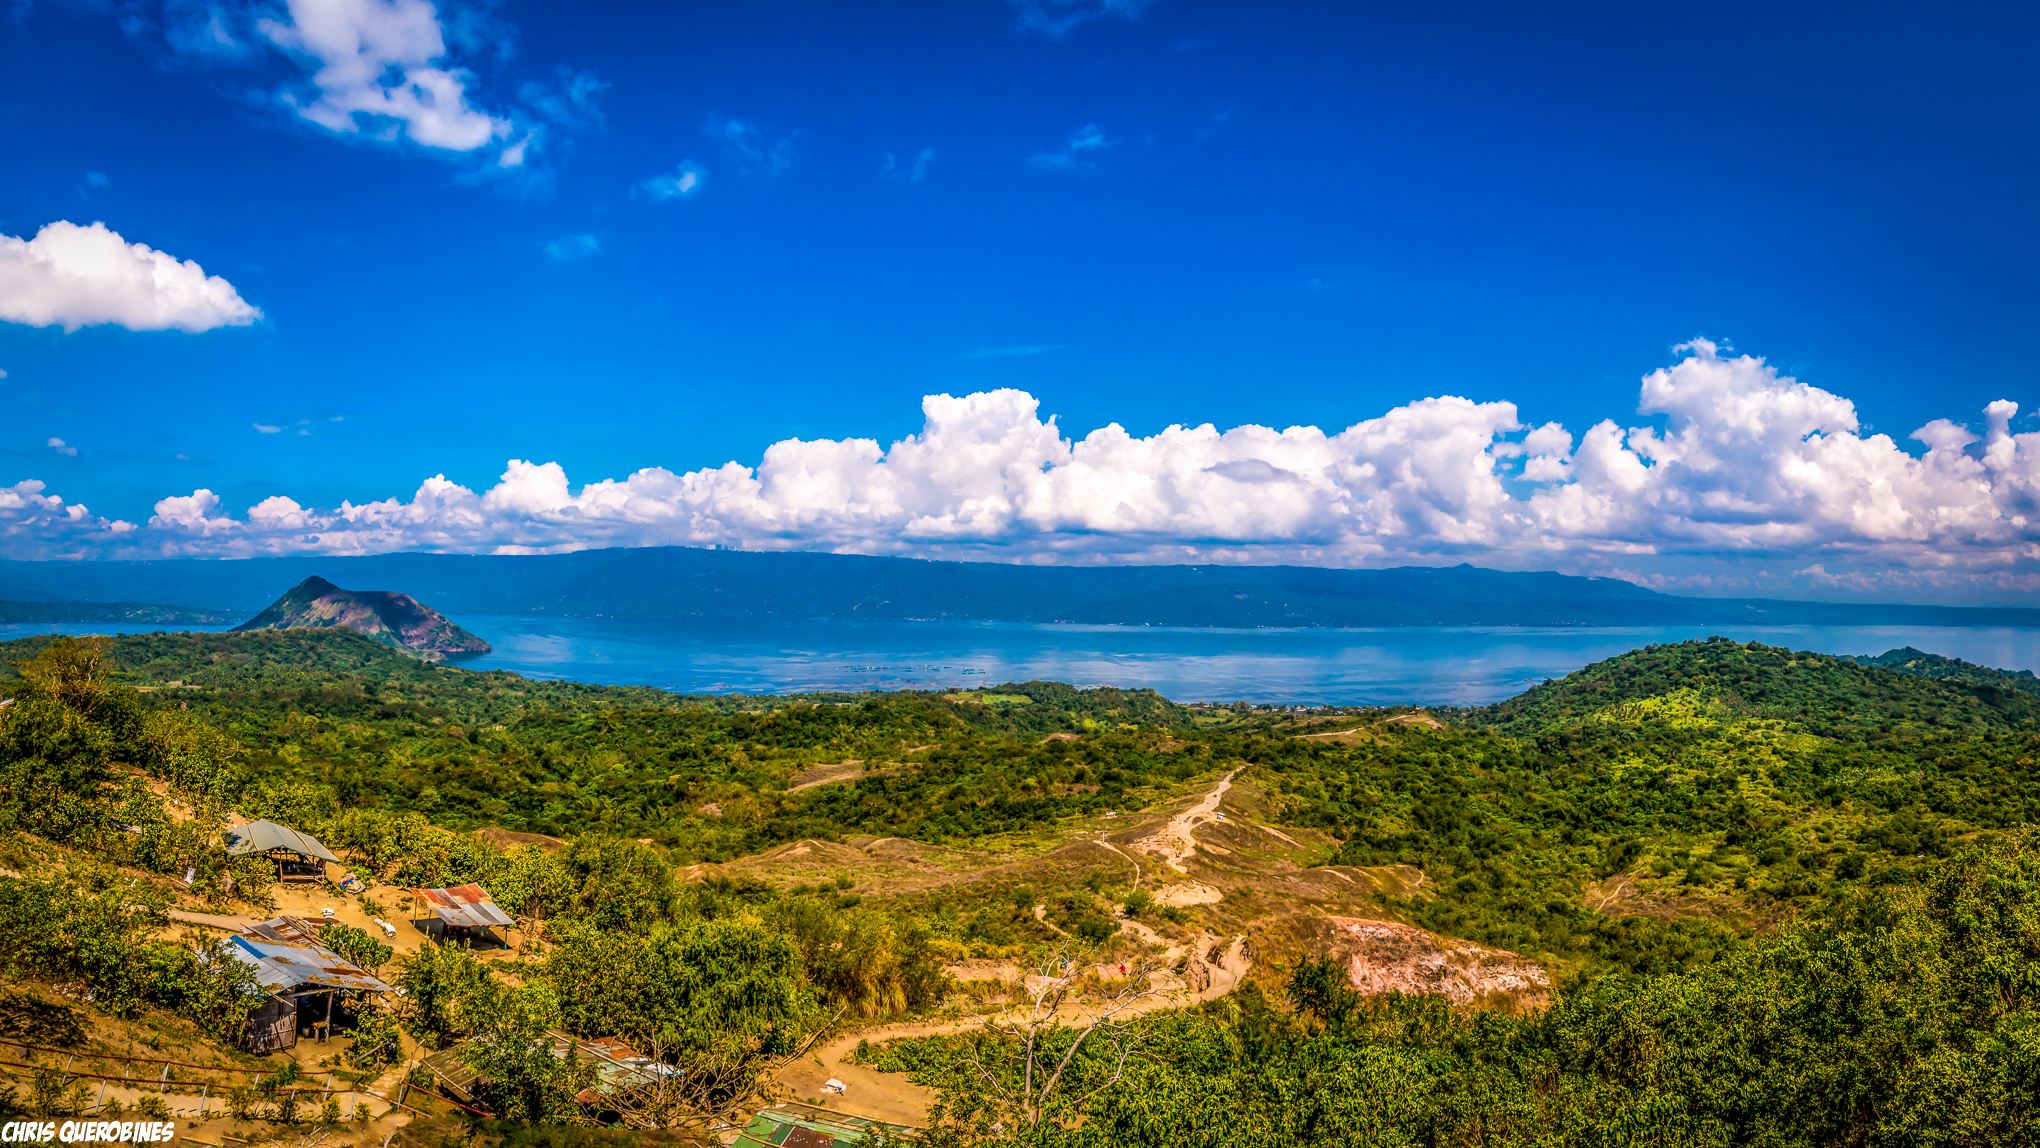 Trail to Taal Crater